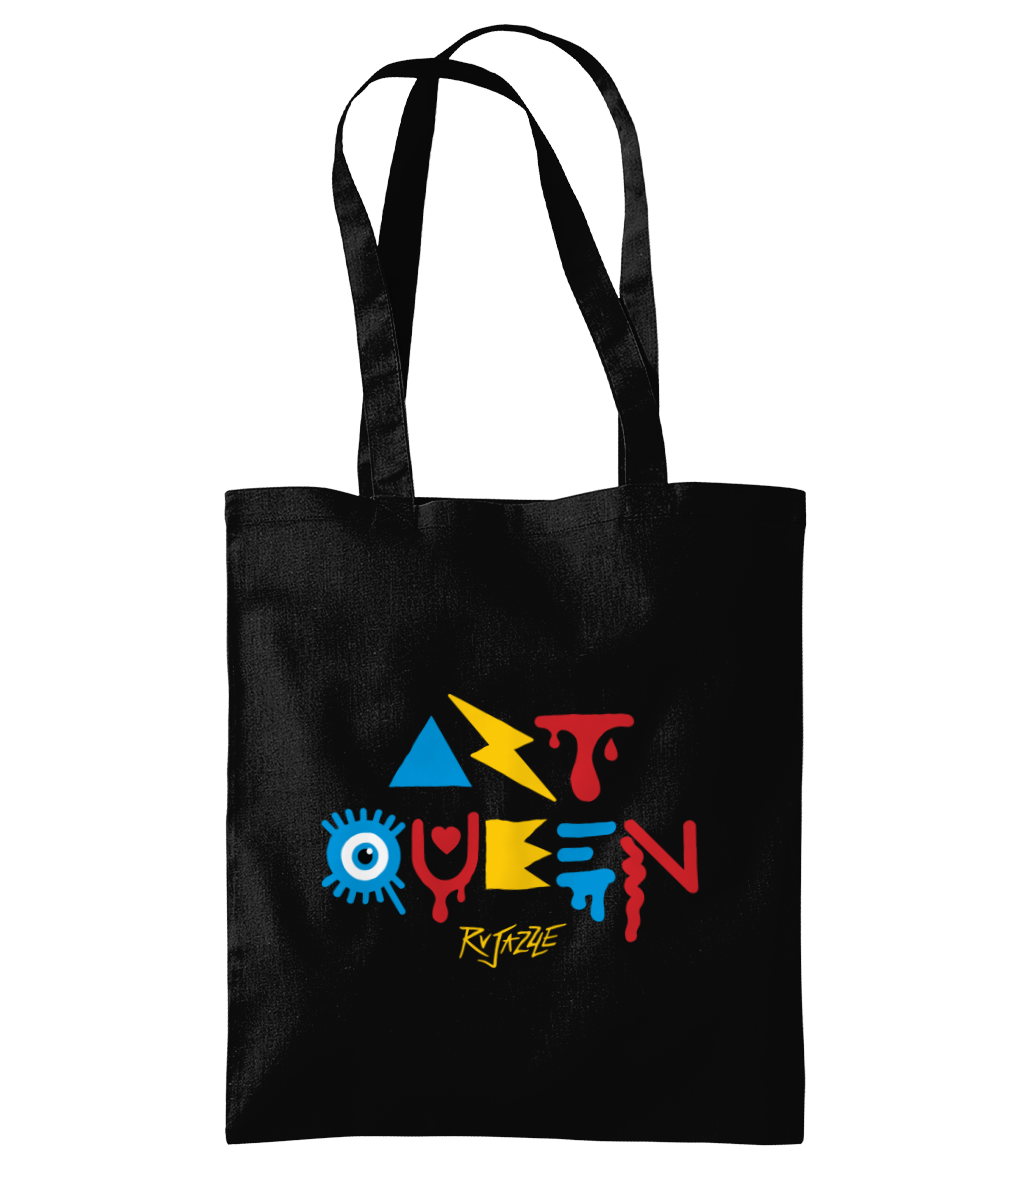 Rujazzle - Art Queen Tote Bag - SNATCHED